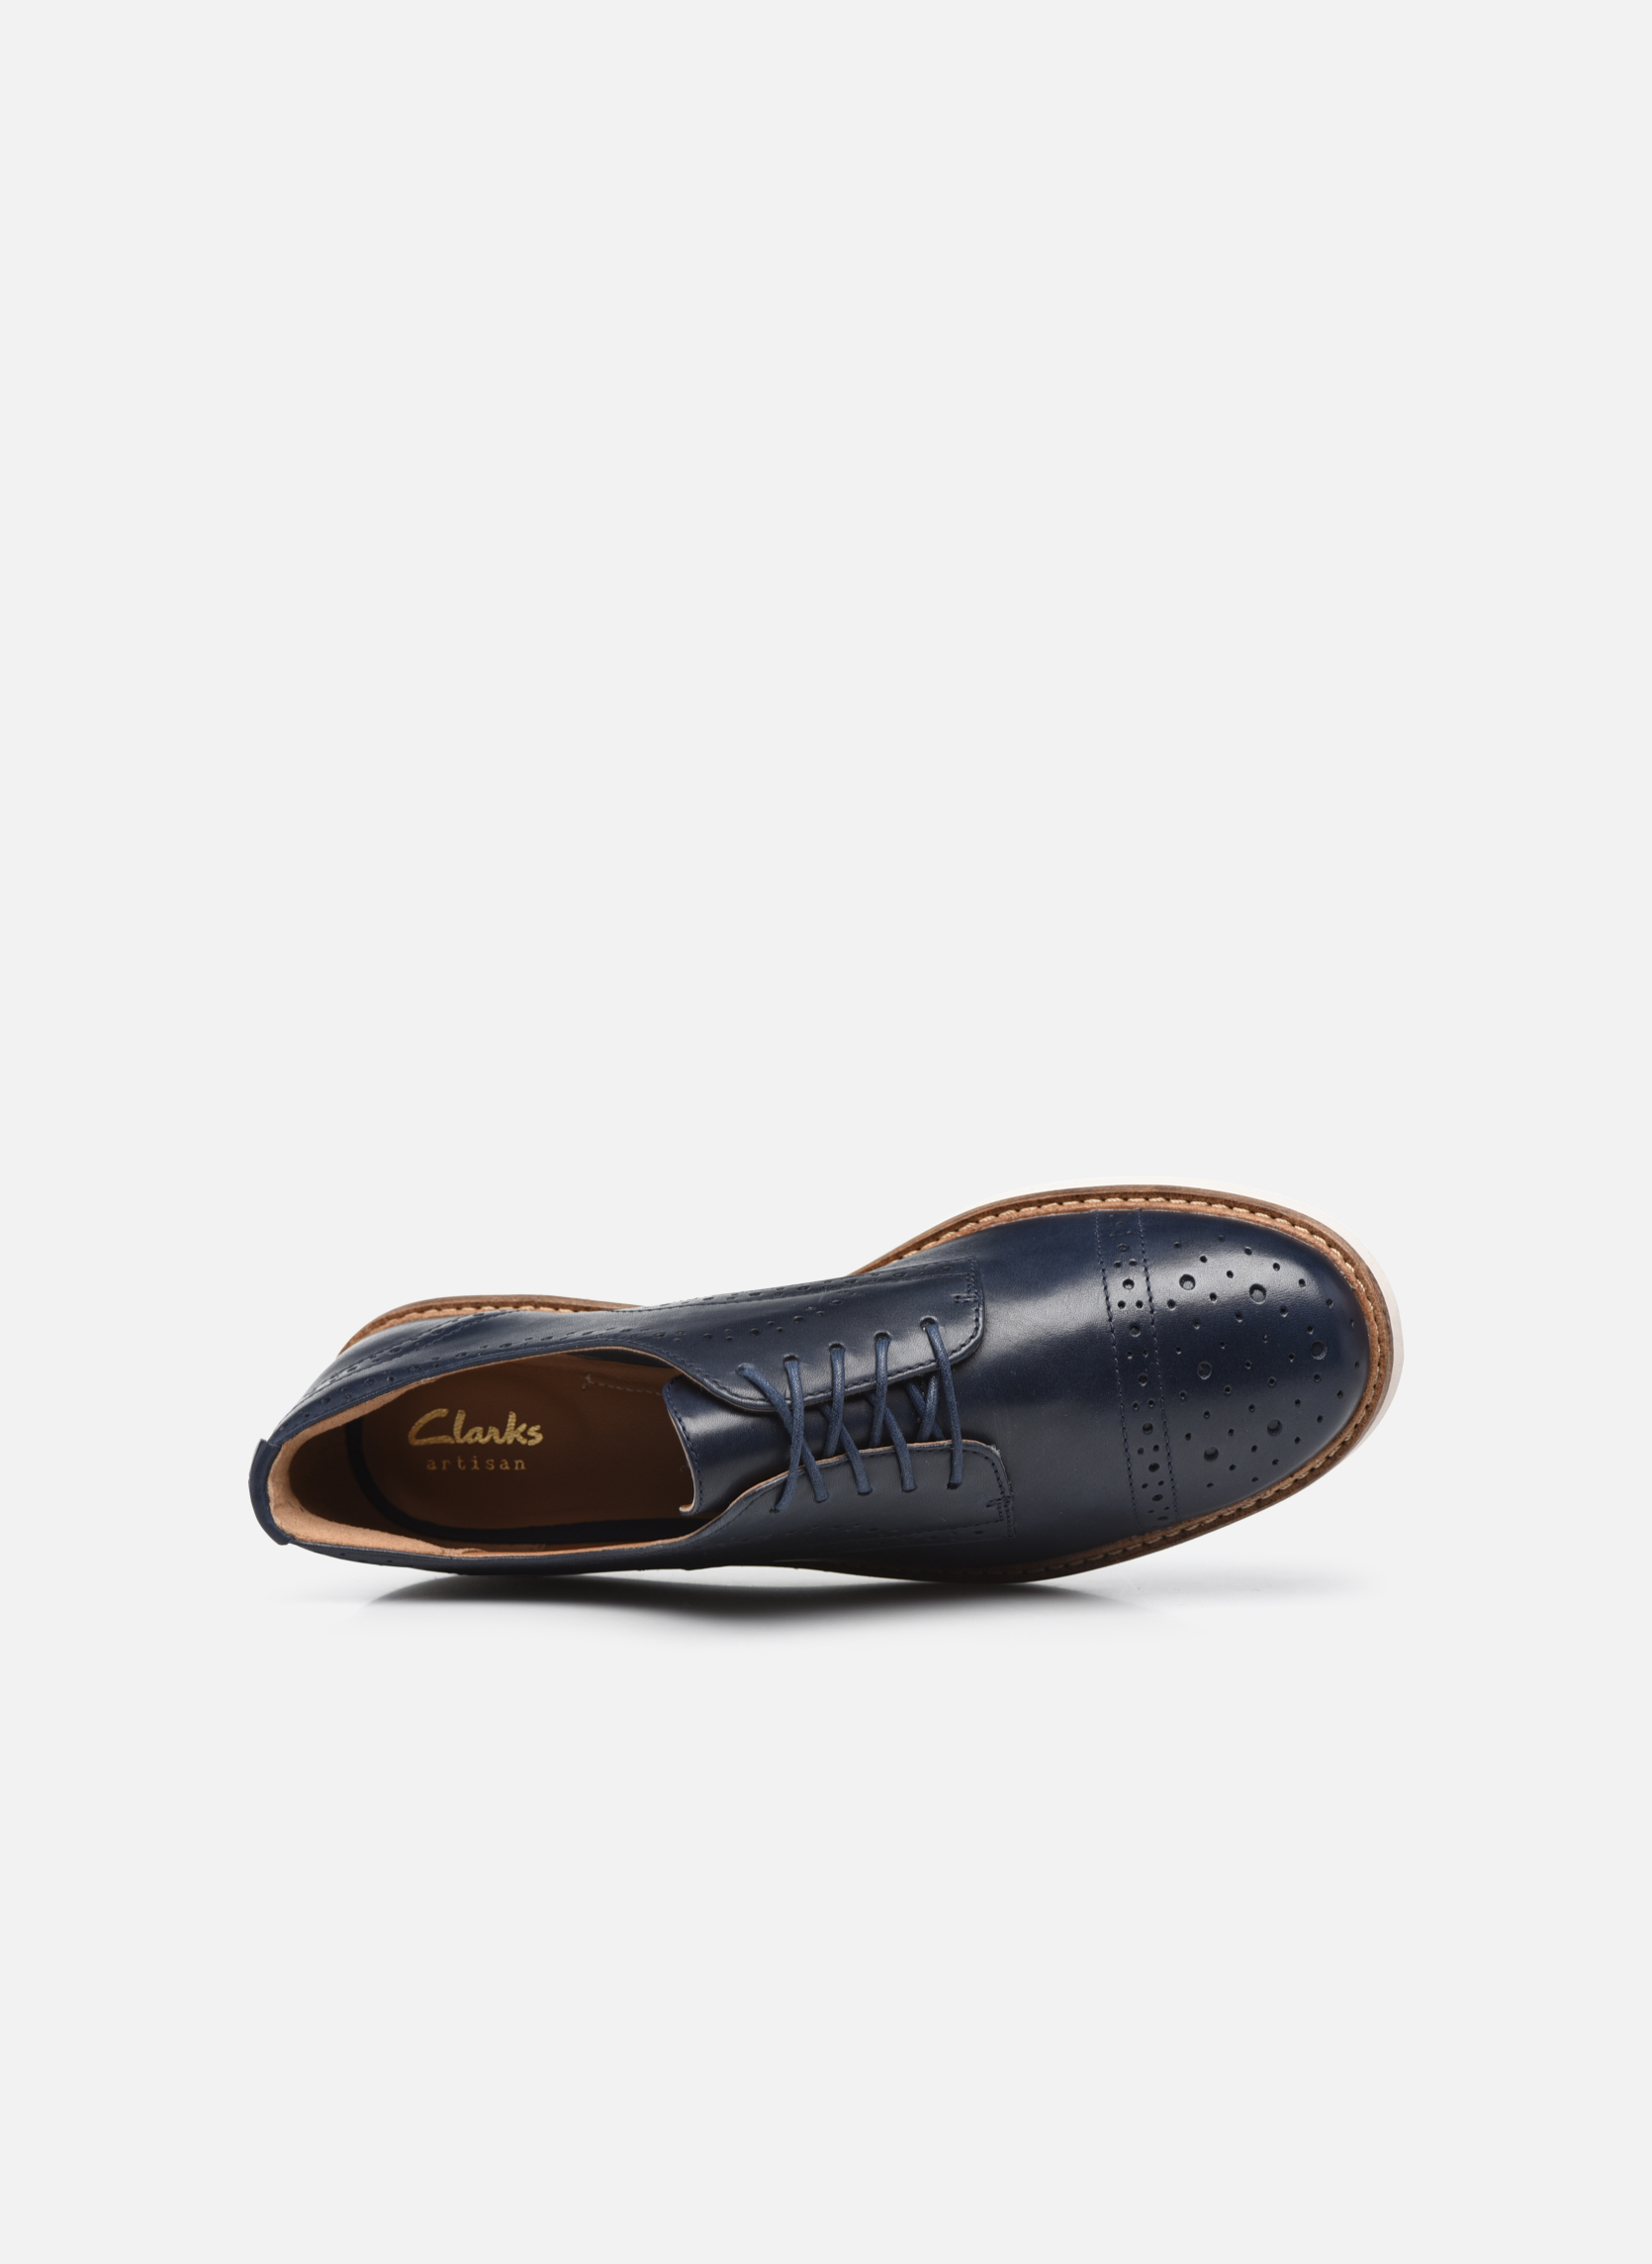 Glick Shine Navy leather